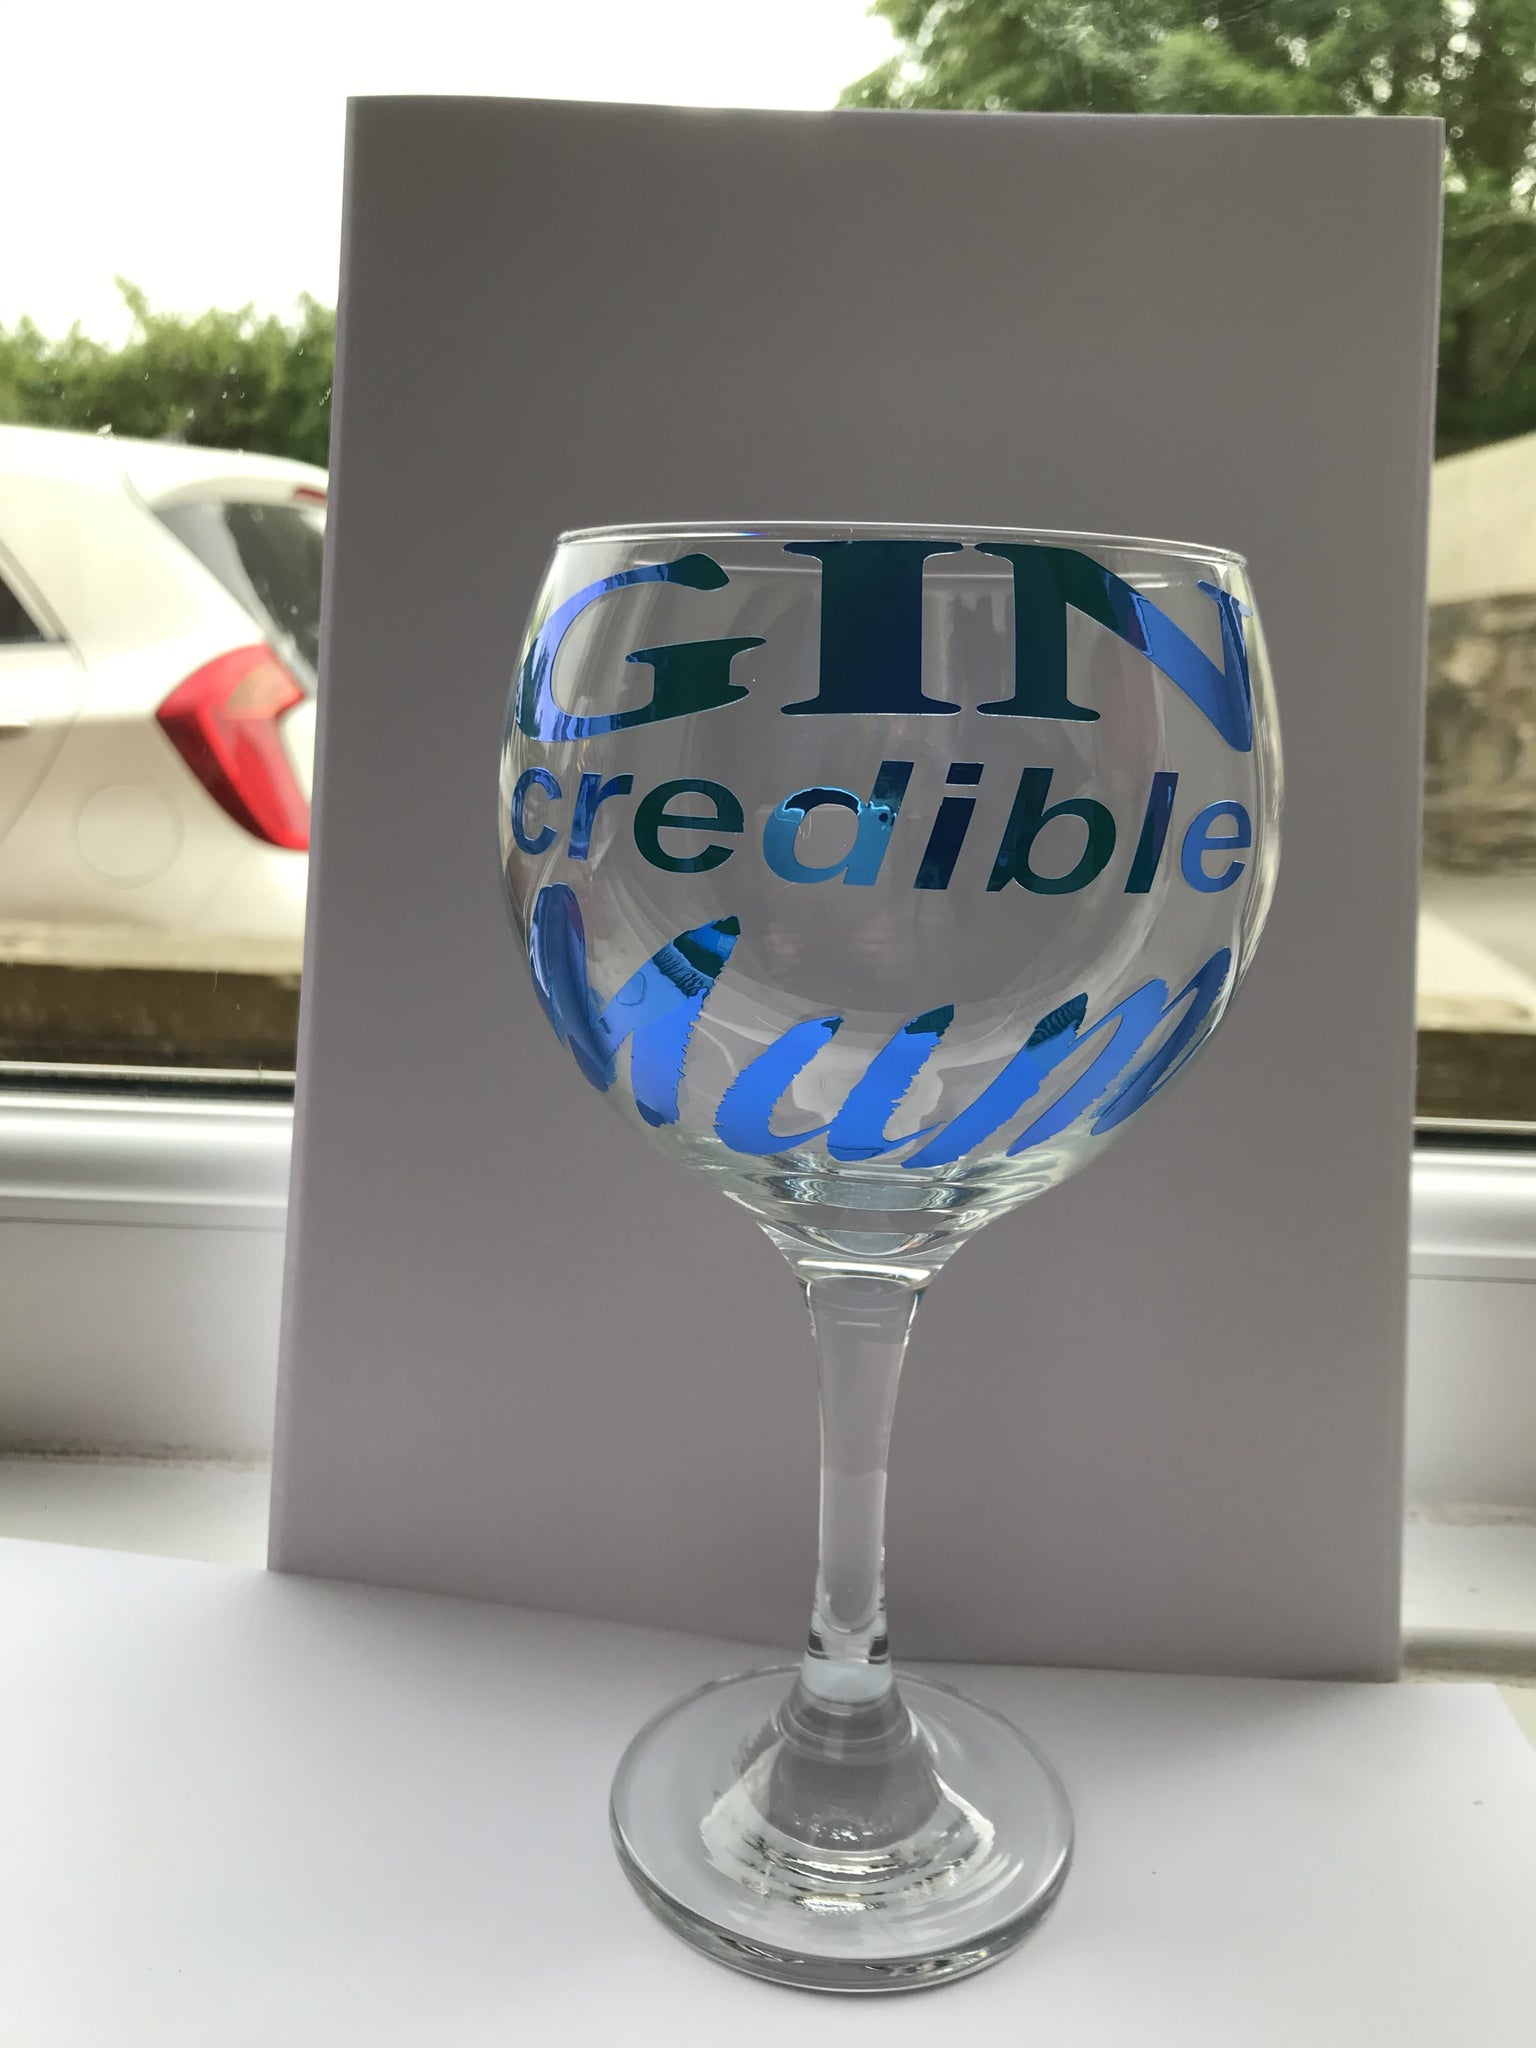 Gin credible mum gin glass - Pugglewick Candles